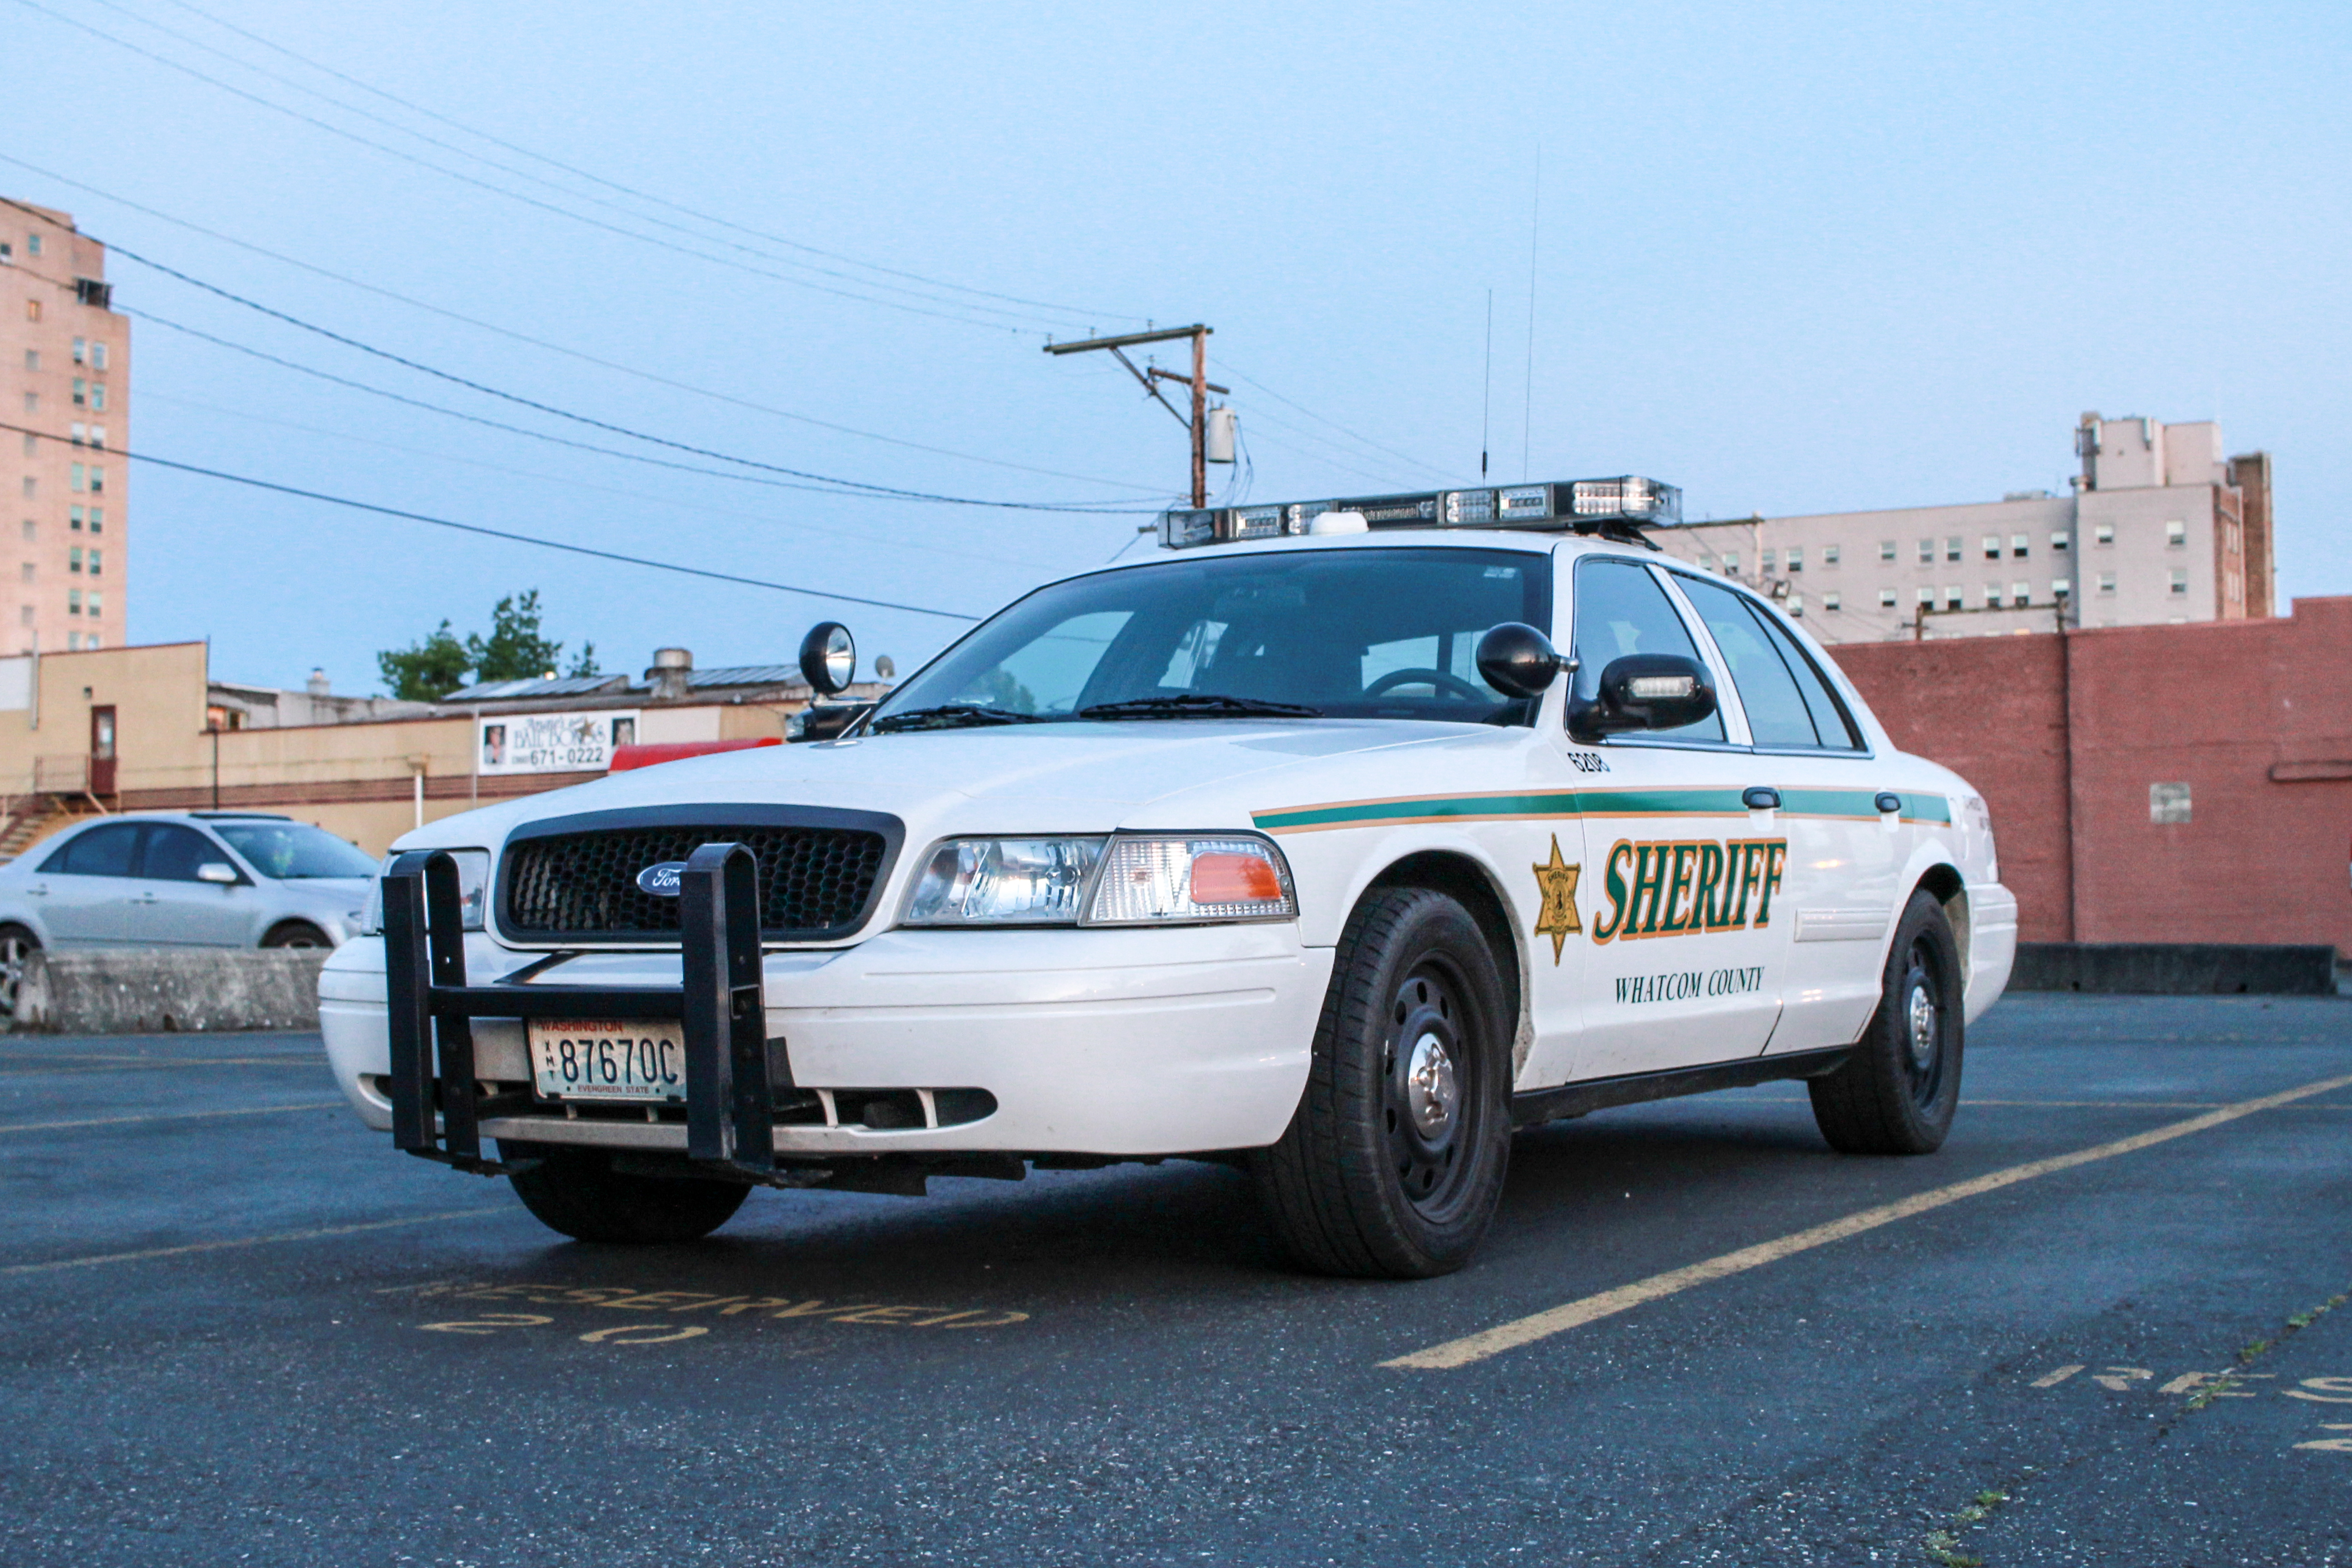 Whatcom sheriff (6208) photo